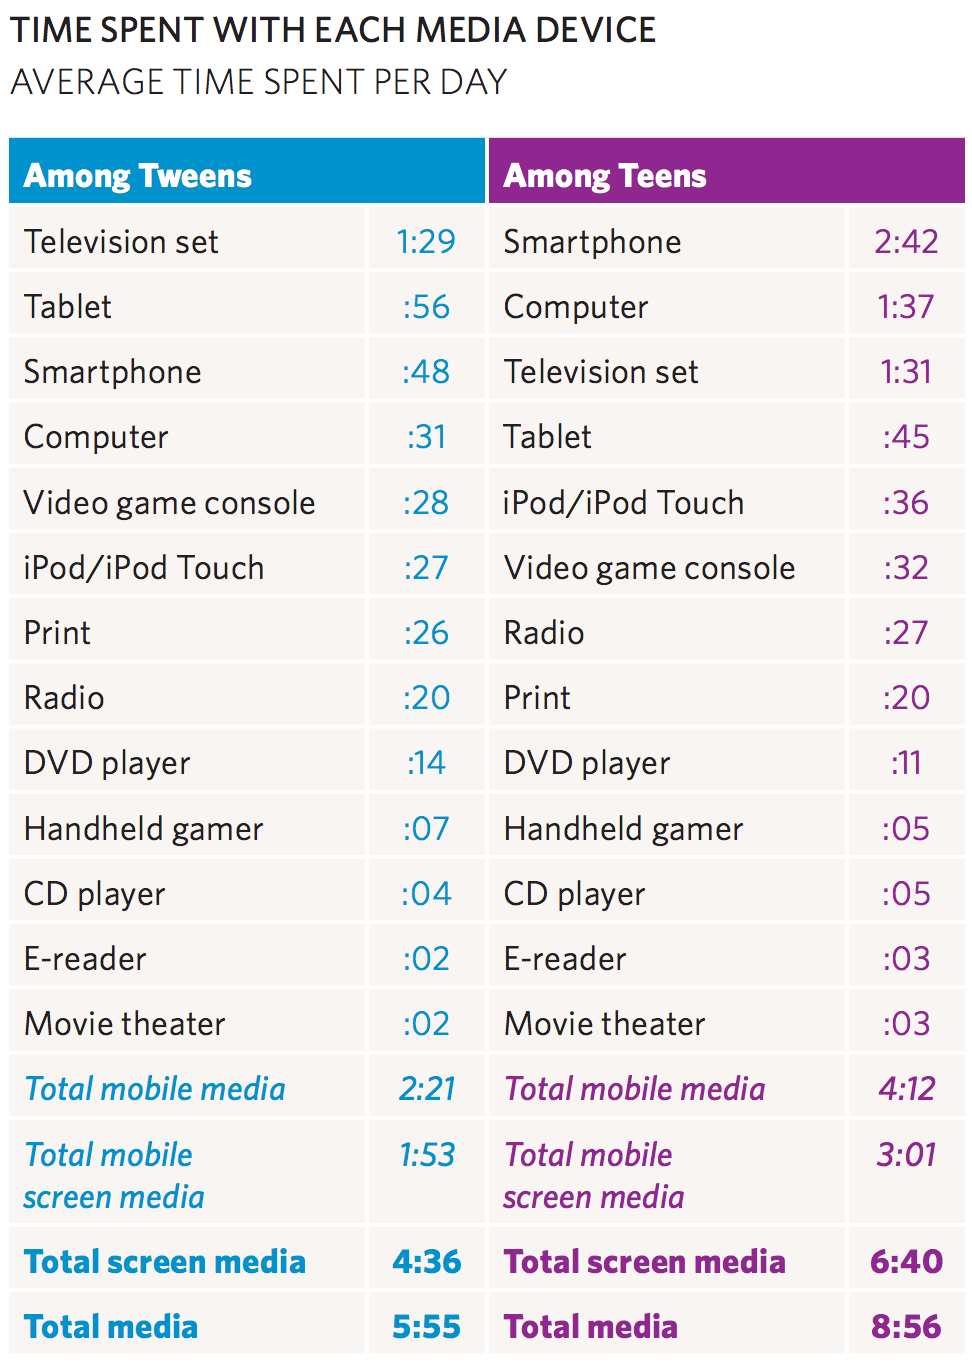 time spent with each device - teens